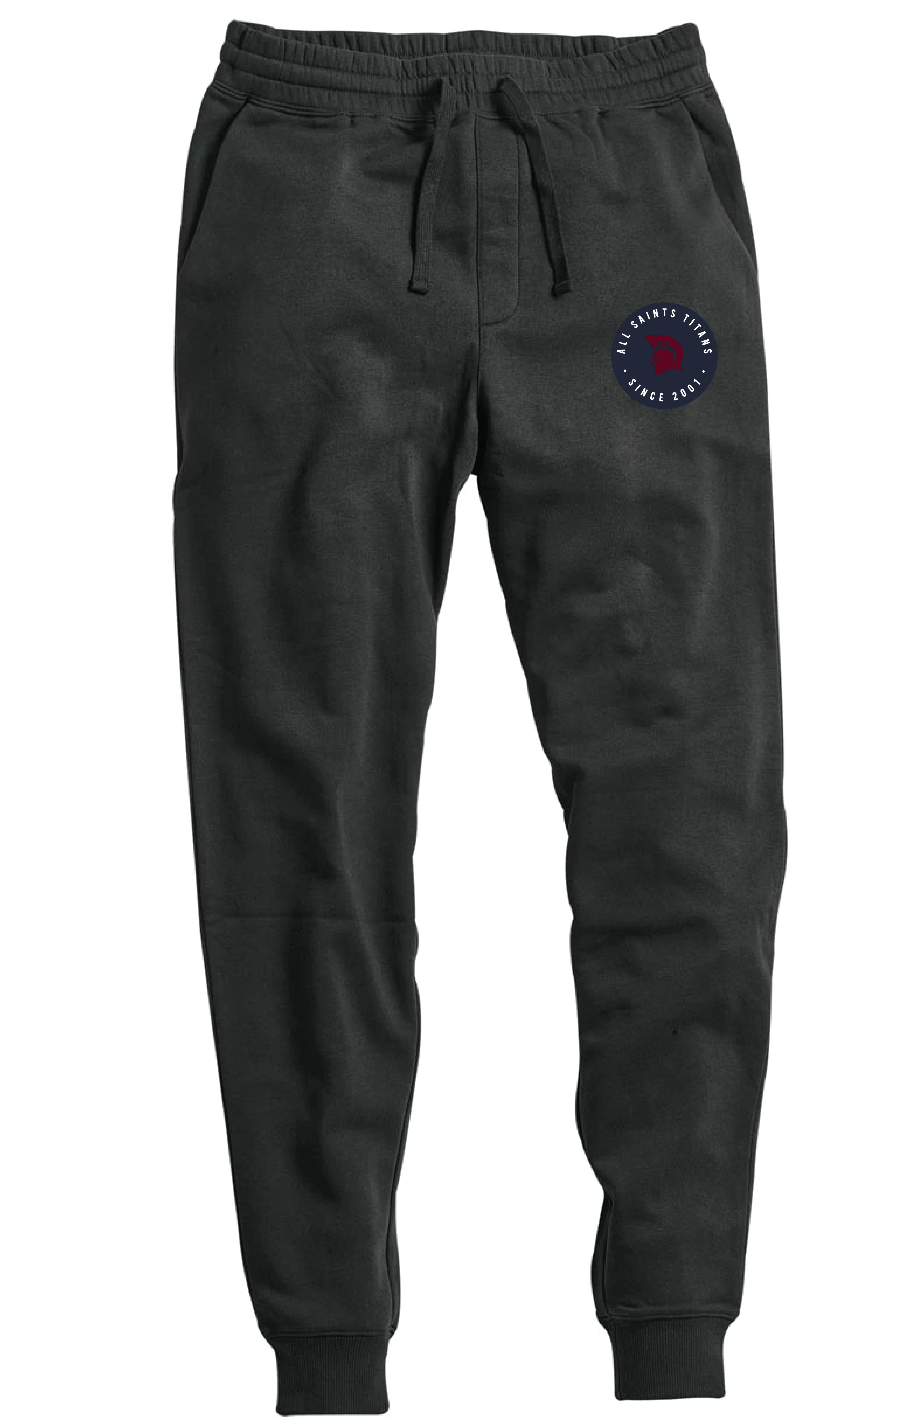 All Saints Joggers-Men's